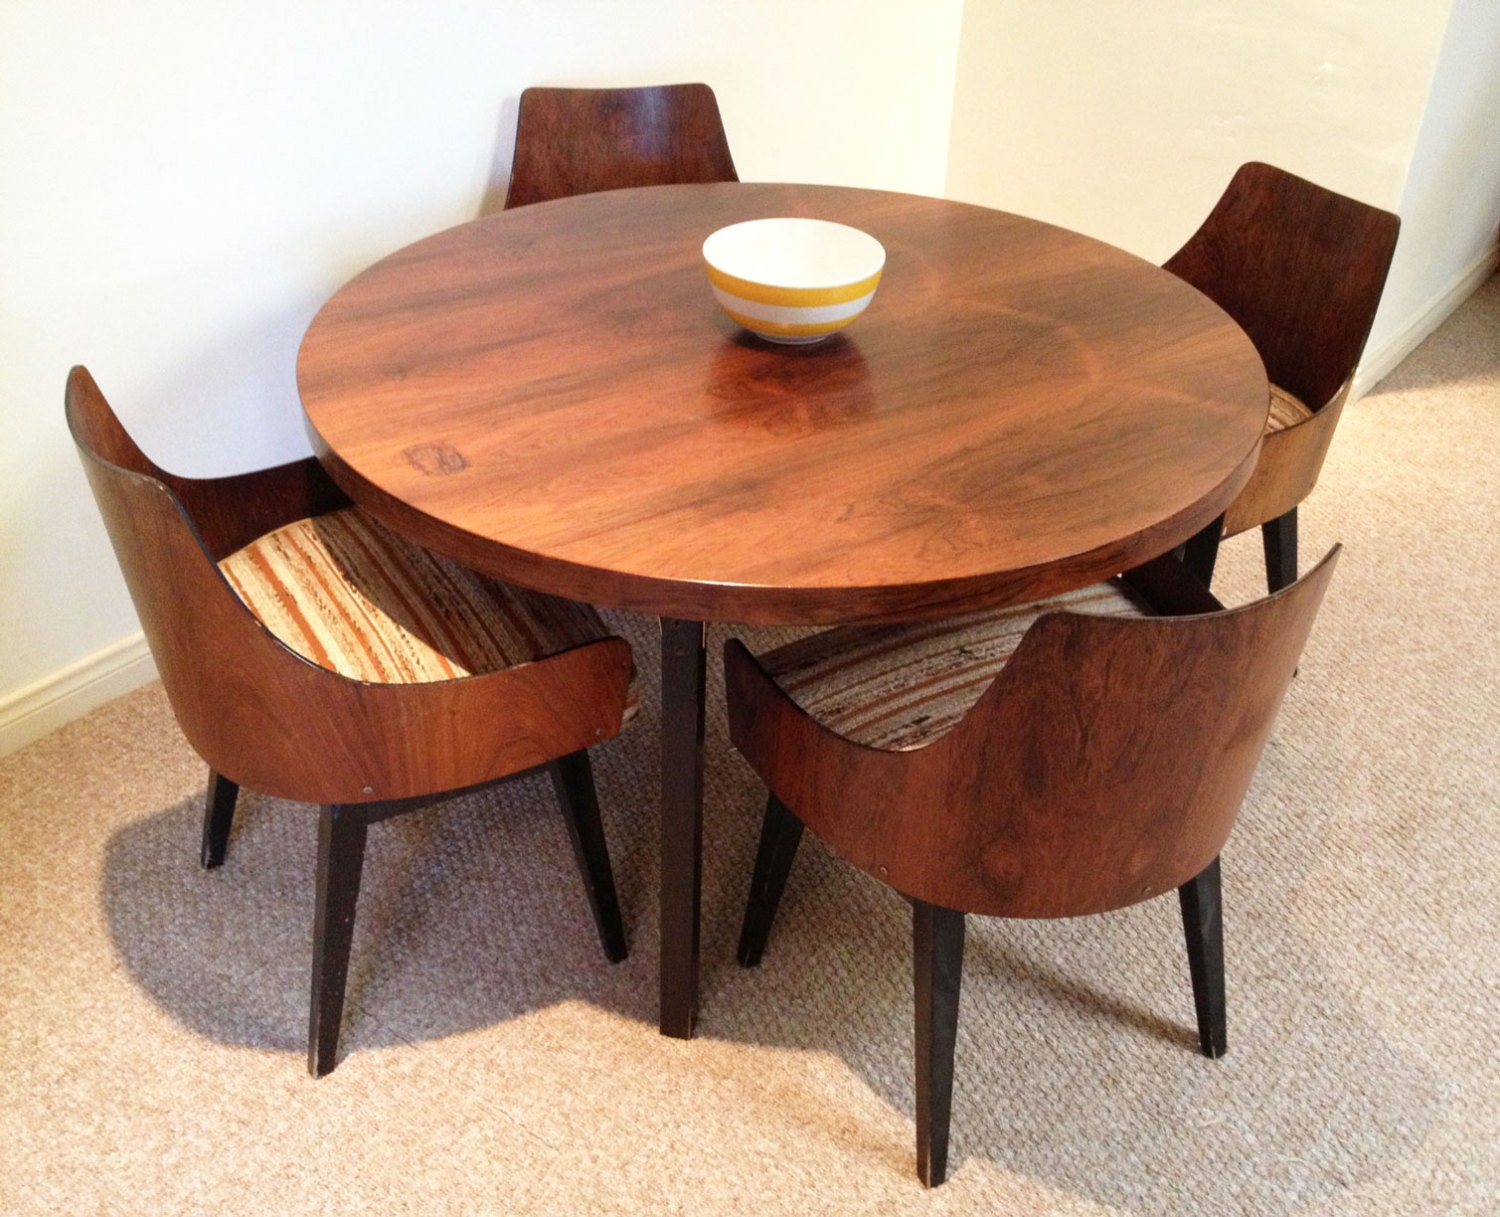 sold soldmid century modern dining set chairs mid century. Black Bedroom Furniture Sets. Home Design Ideas